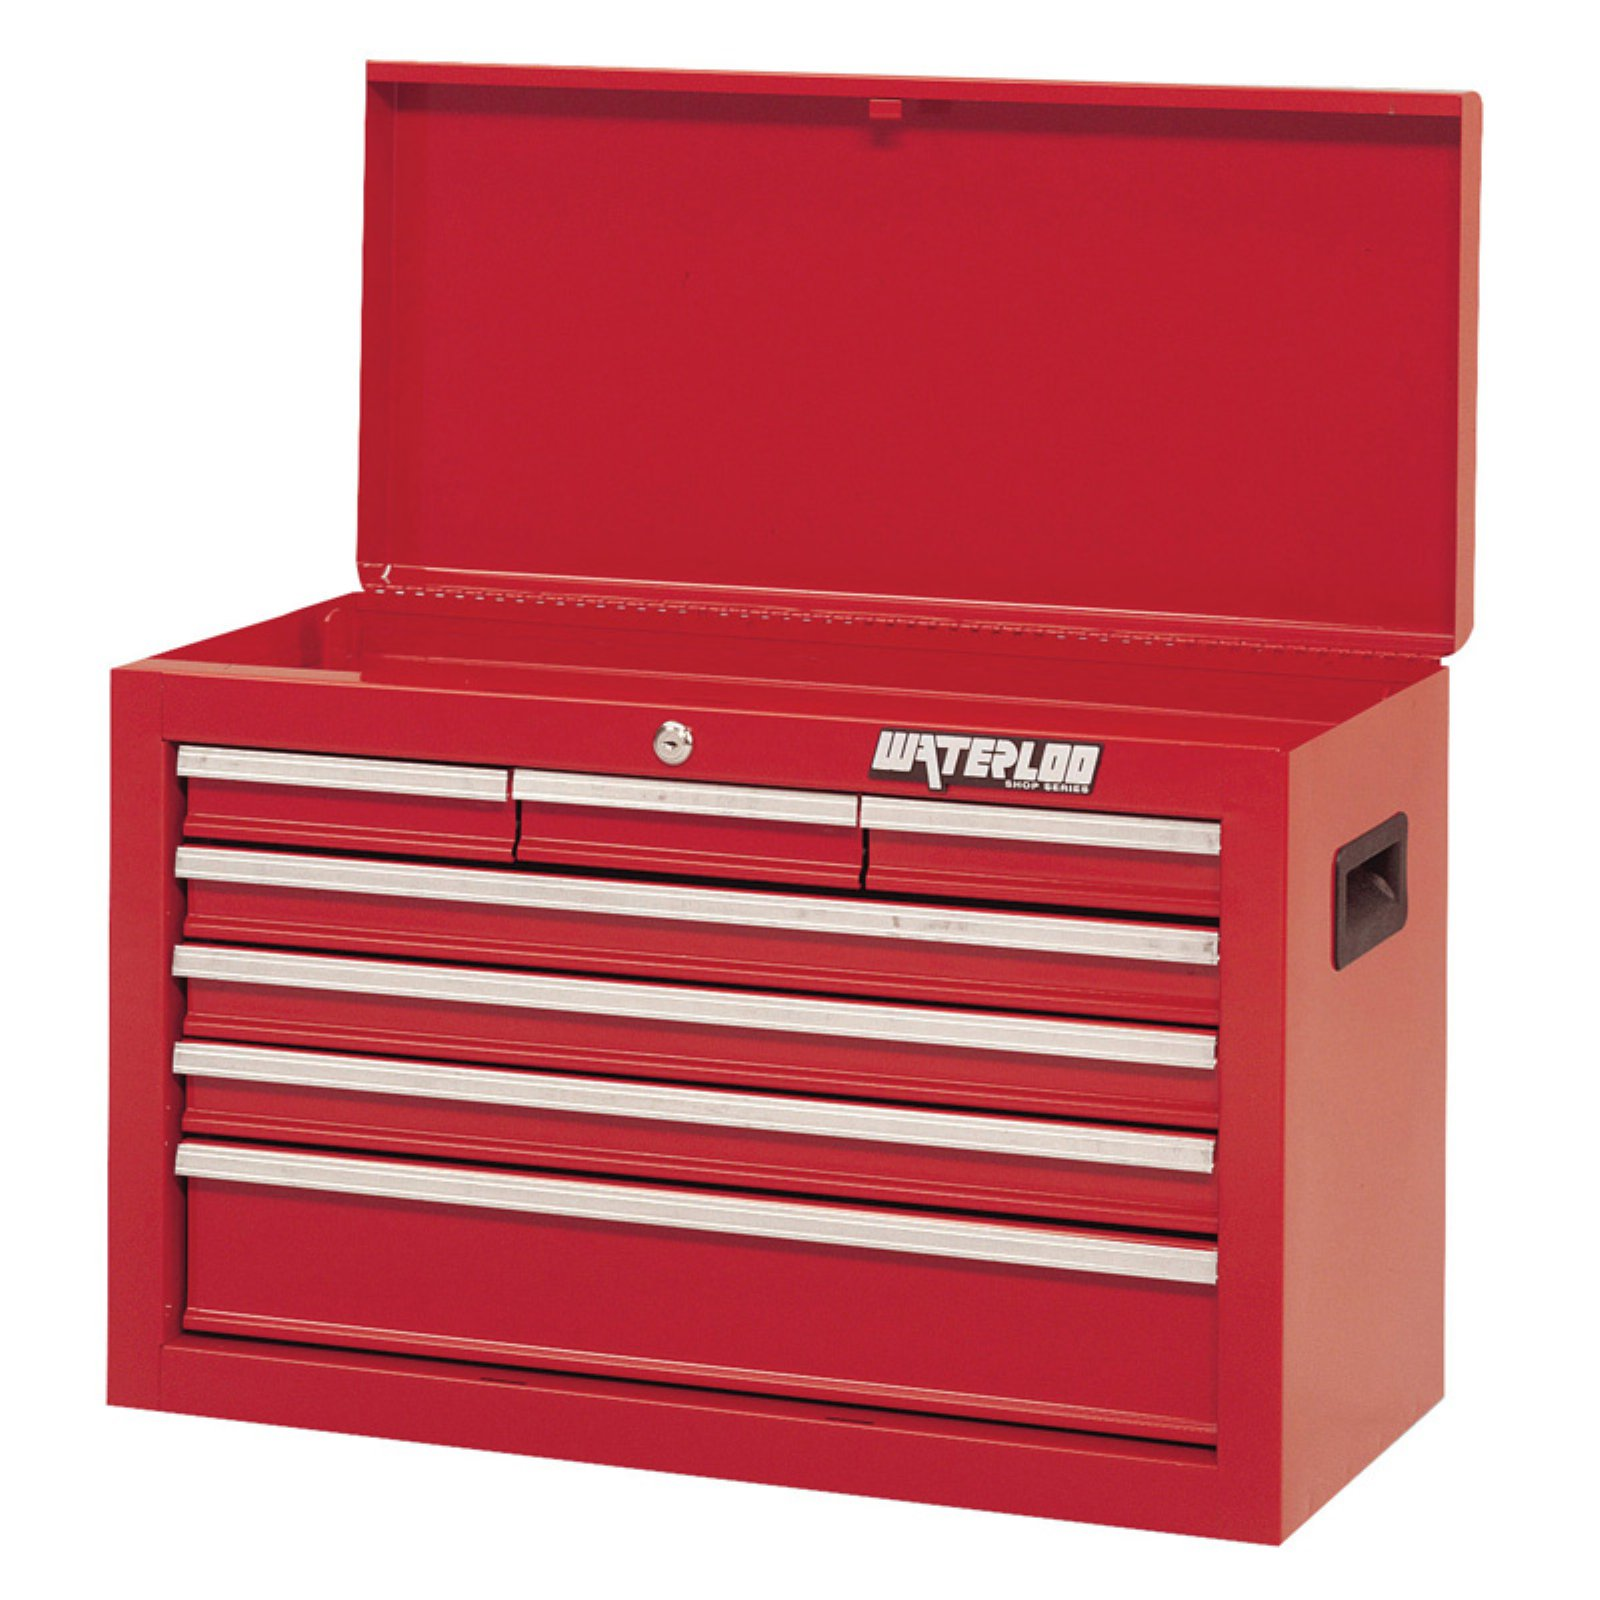 Marvelous Waterloo Shop Series 26 In. Red 7 Drawer Chest